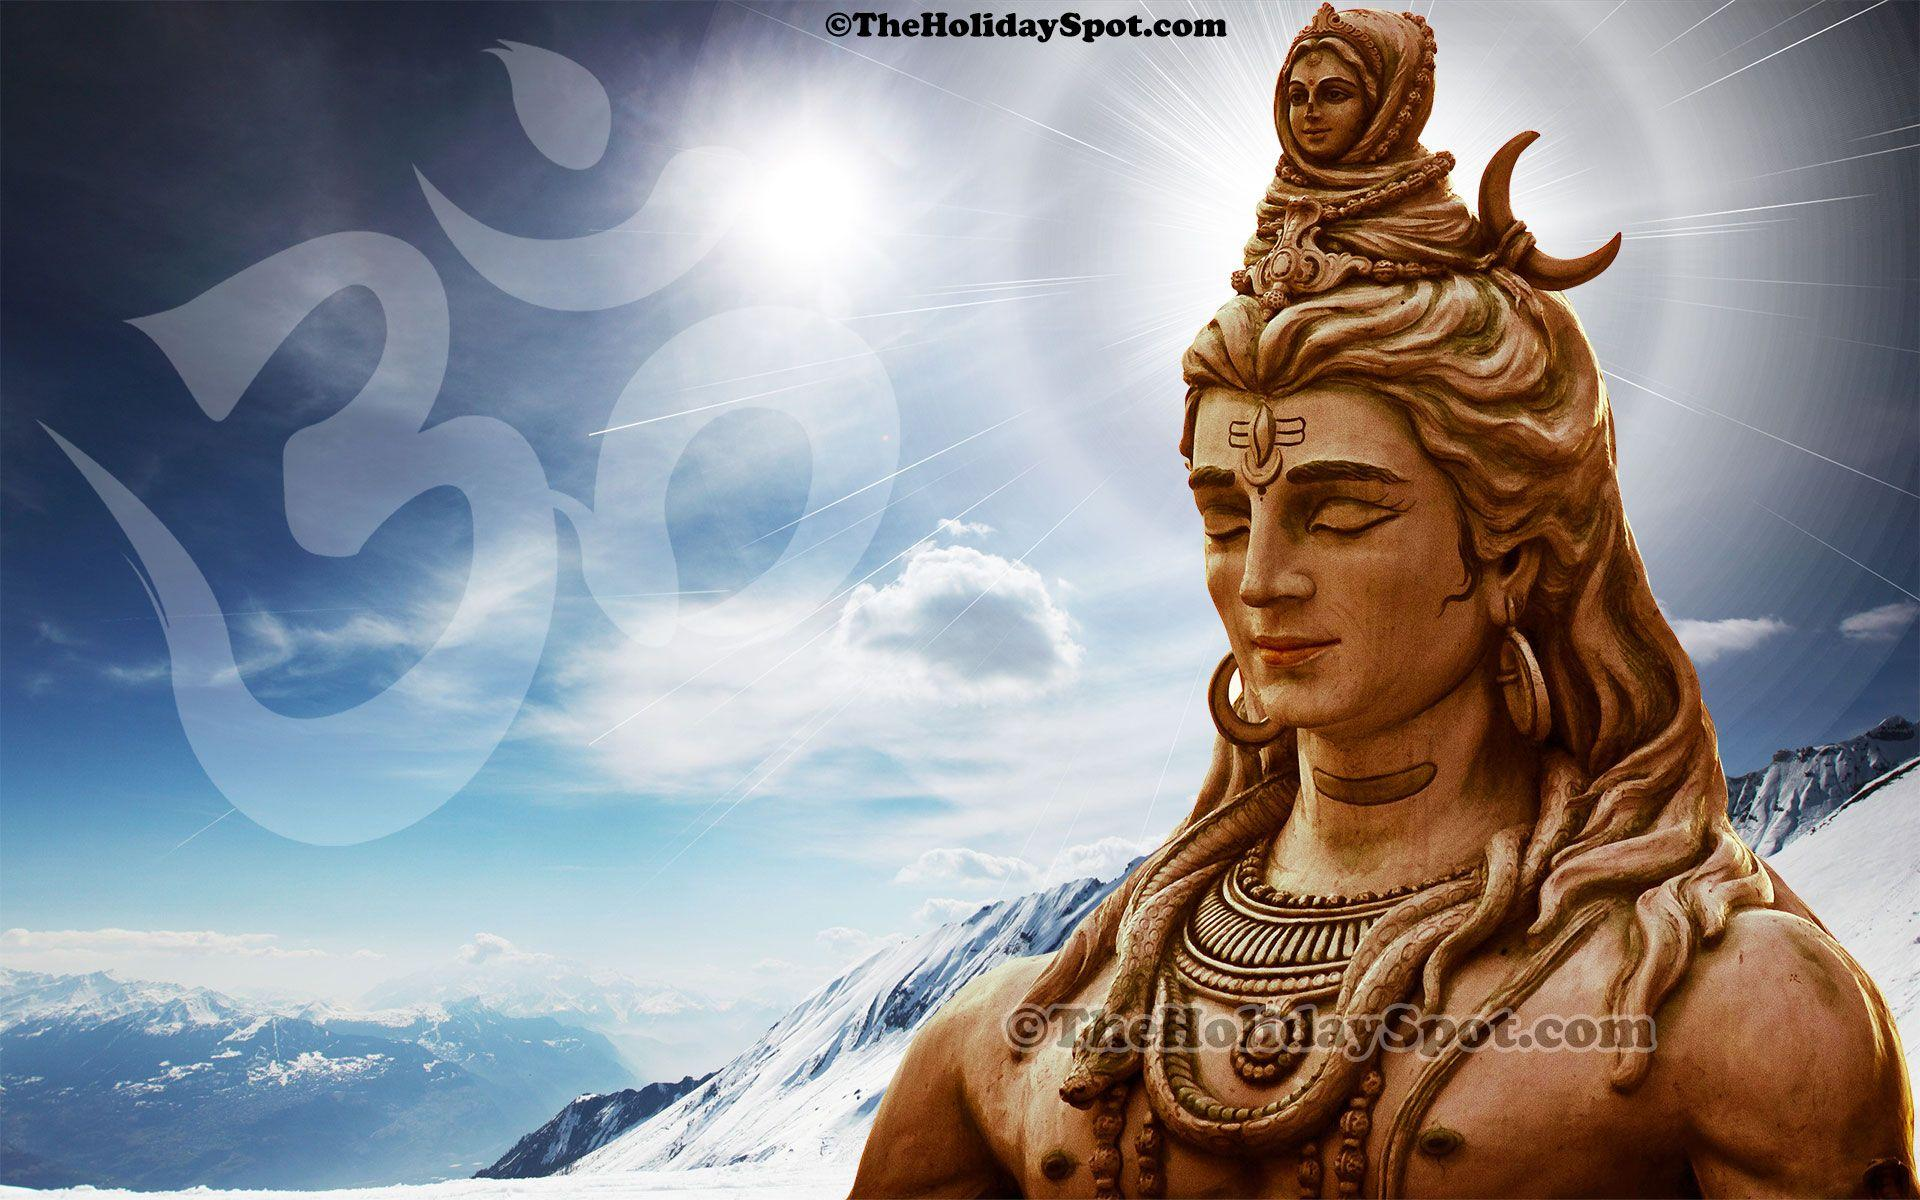 Download Wallpaper Lord Shiv - wp1810823  Gallery_475474.jpg